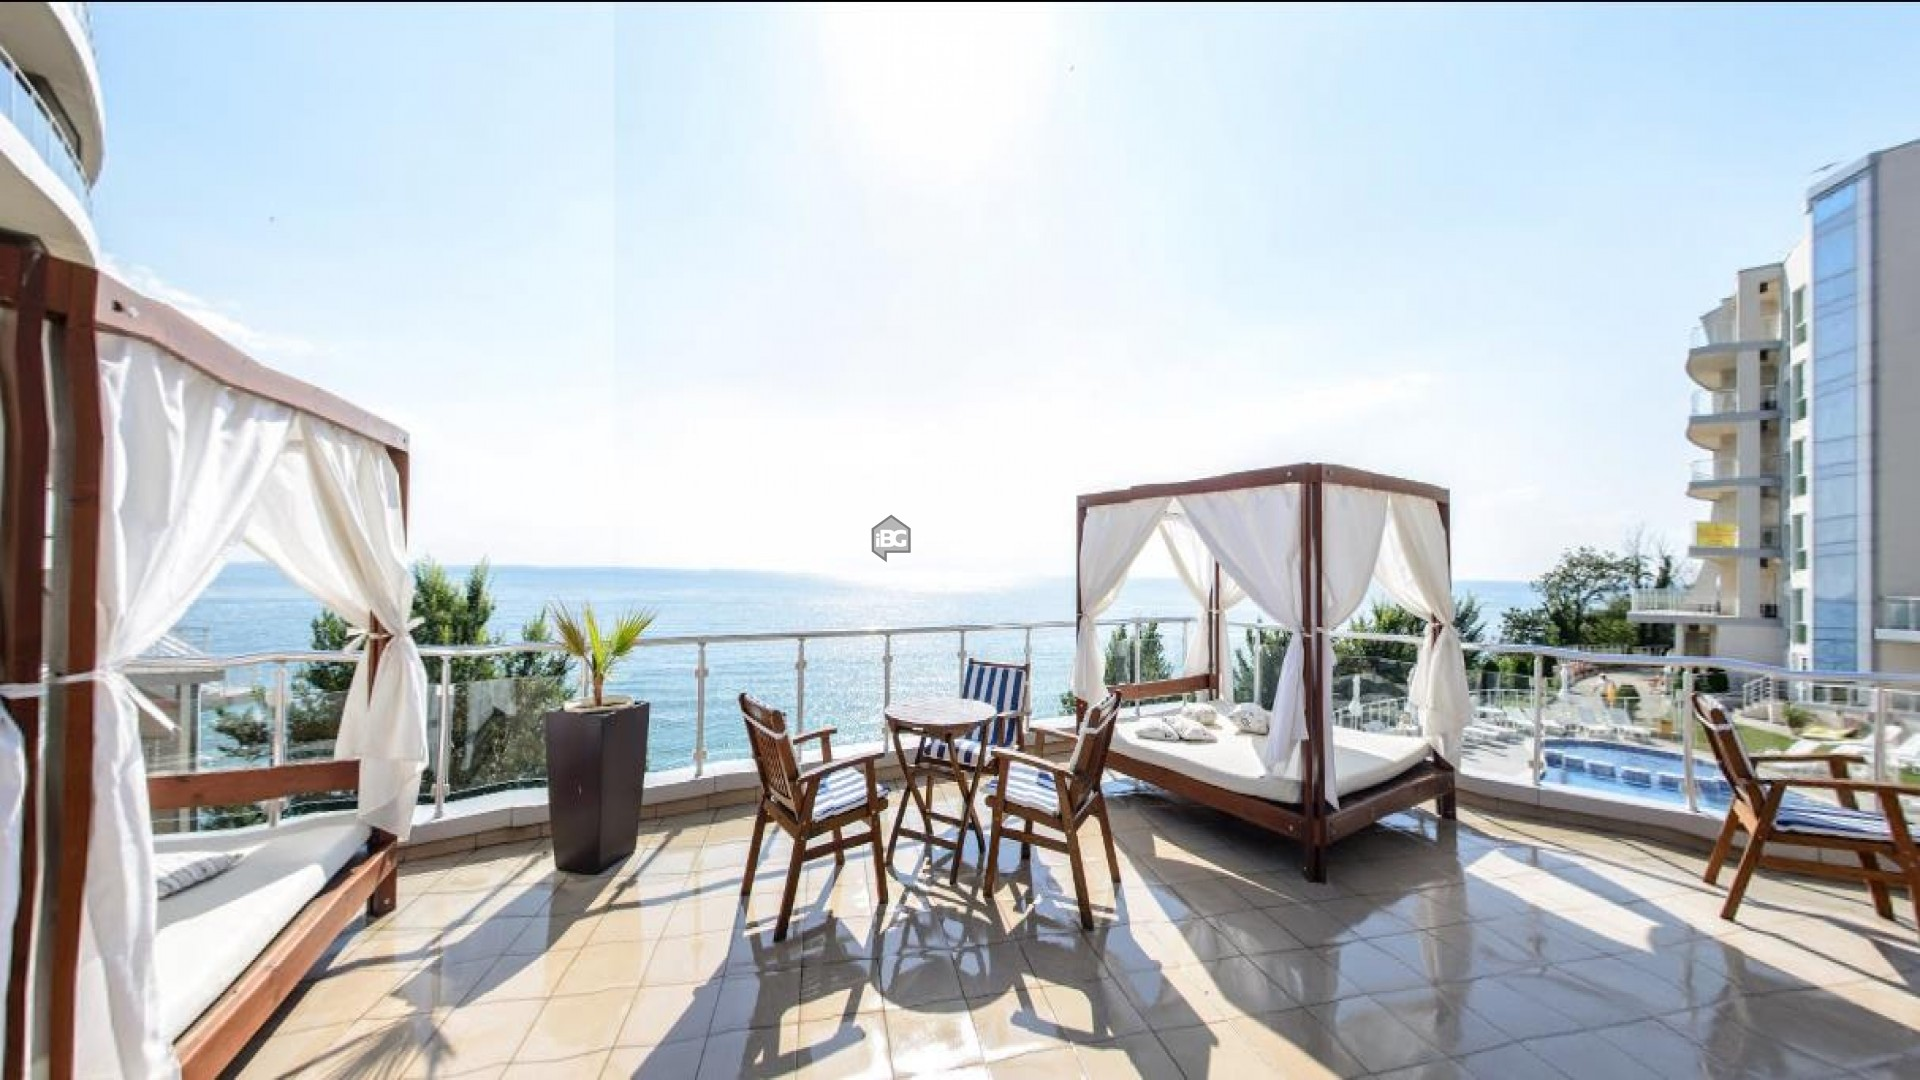 Two bedroom apartment Byala 150 m2